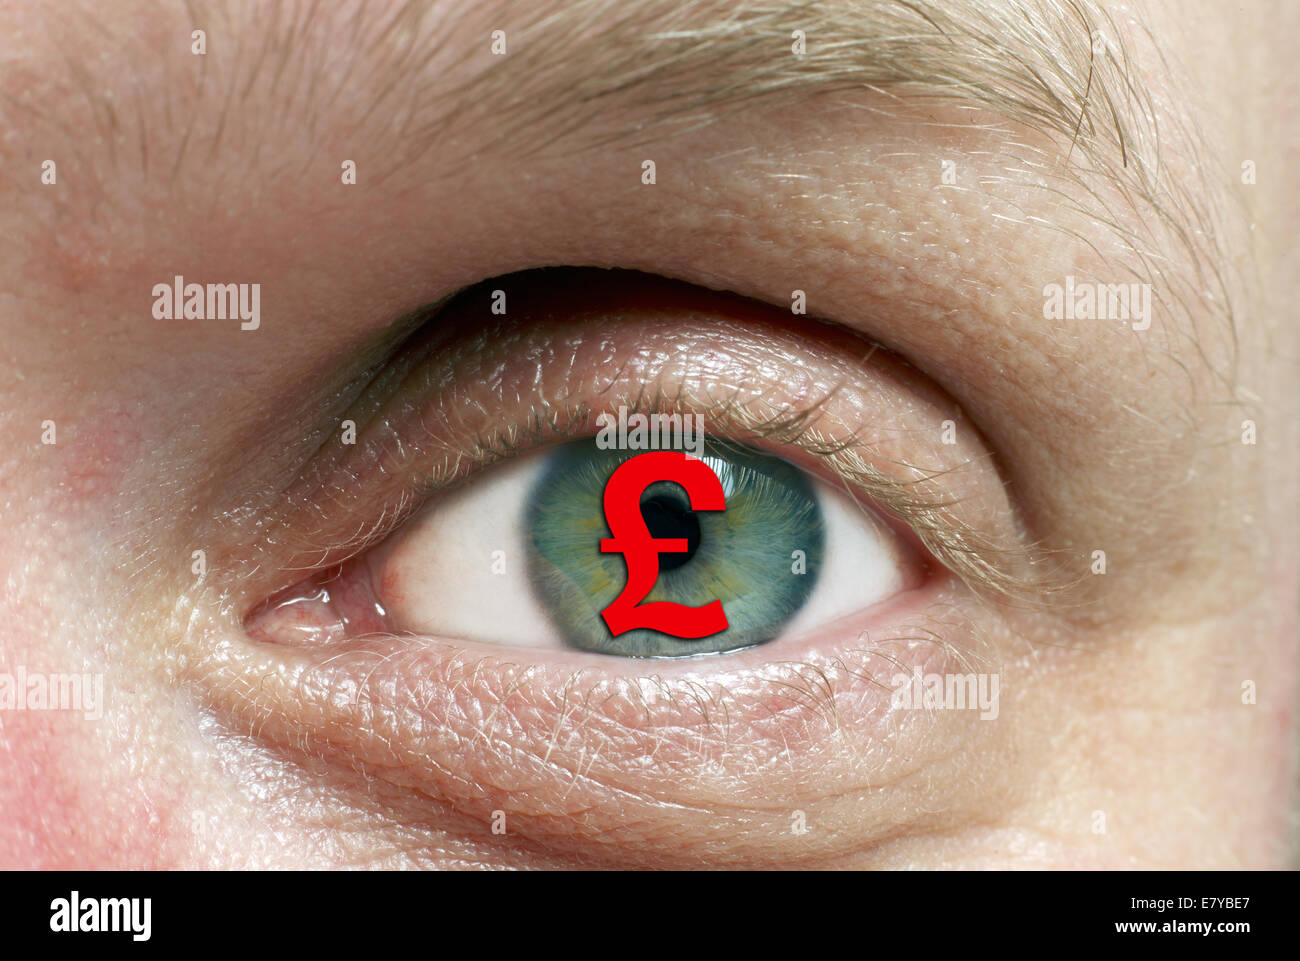 Pound symbol in eye, representing obsession with money. - Stock Image